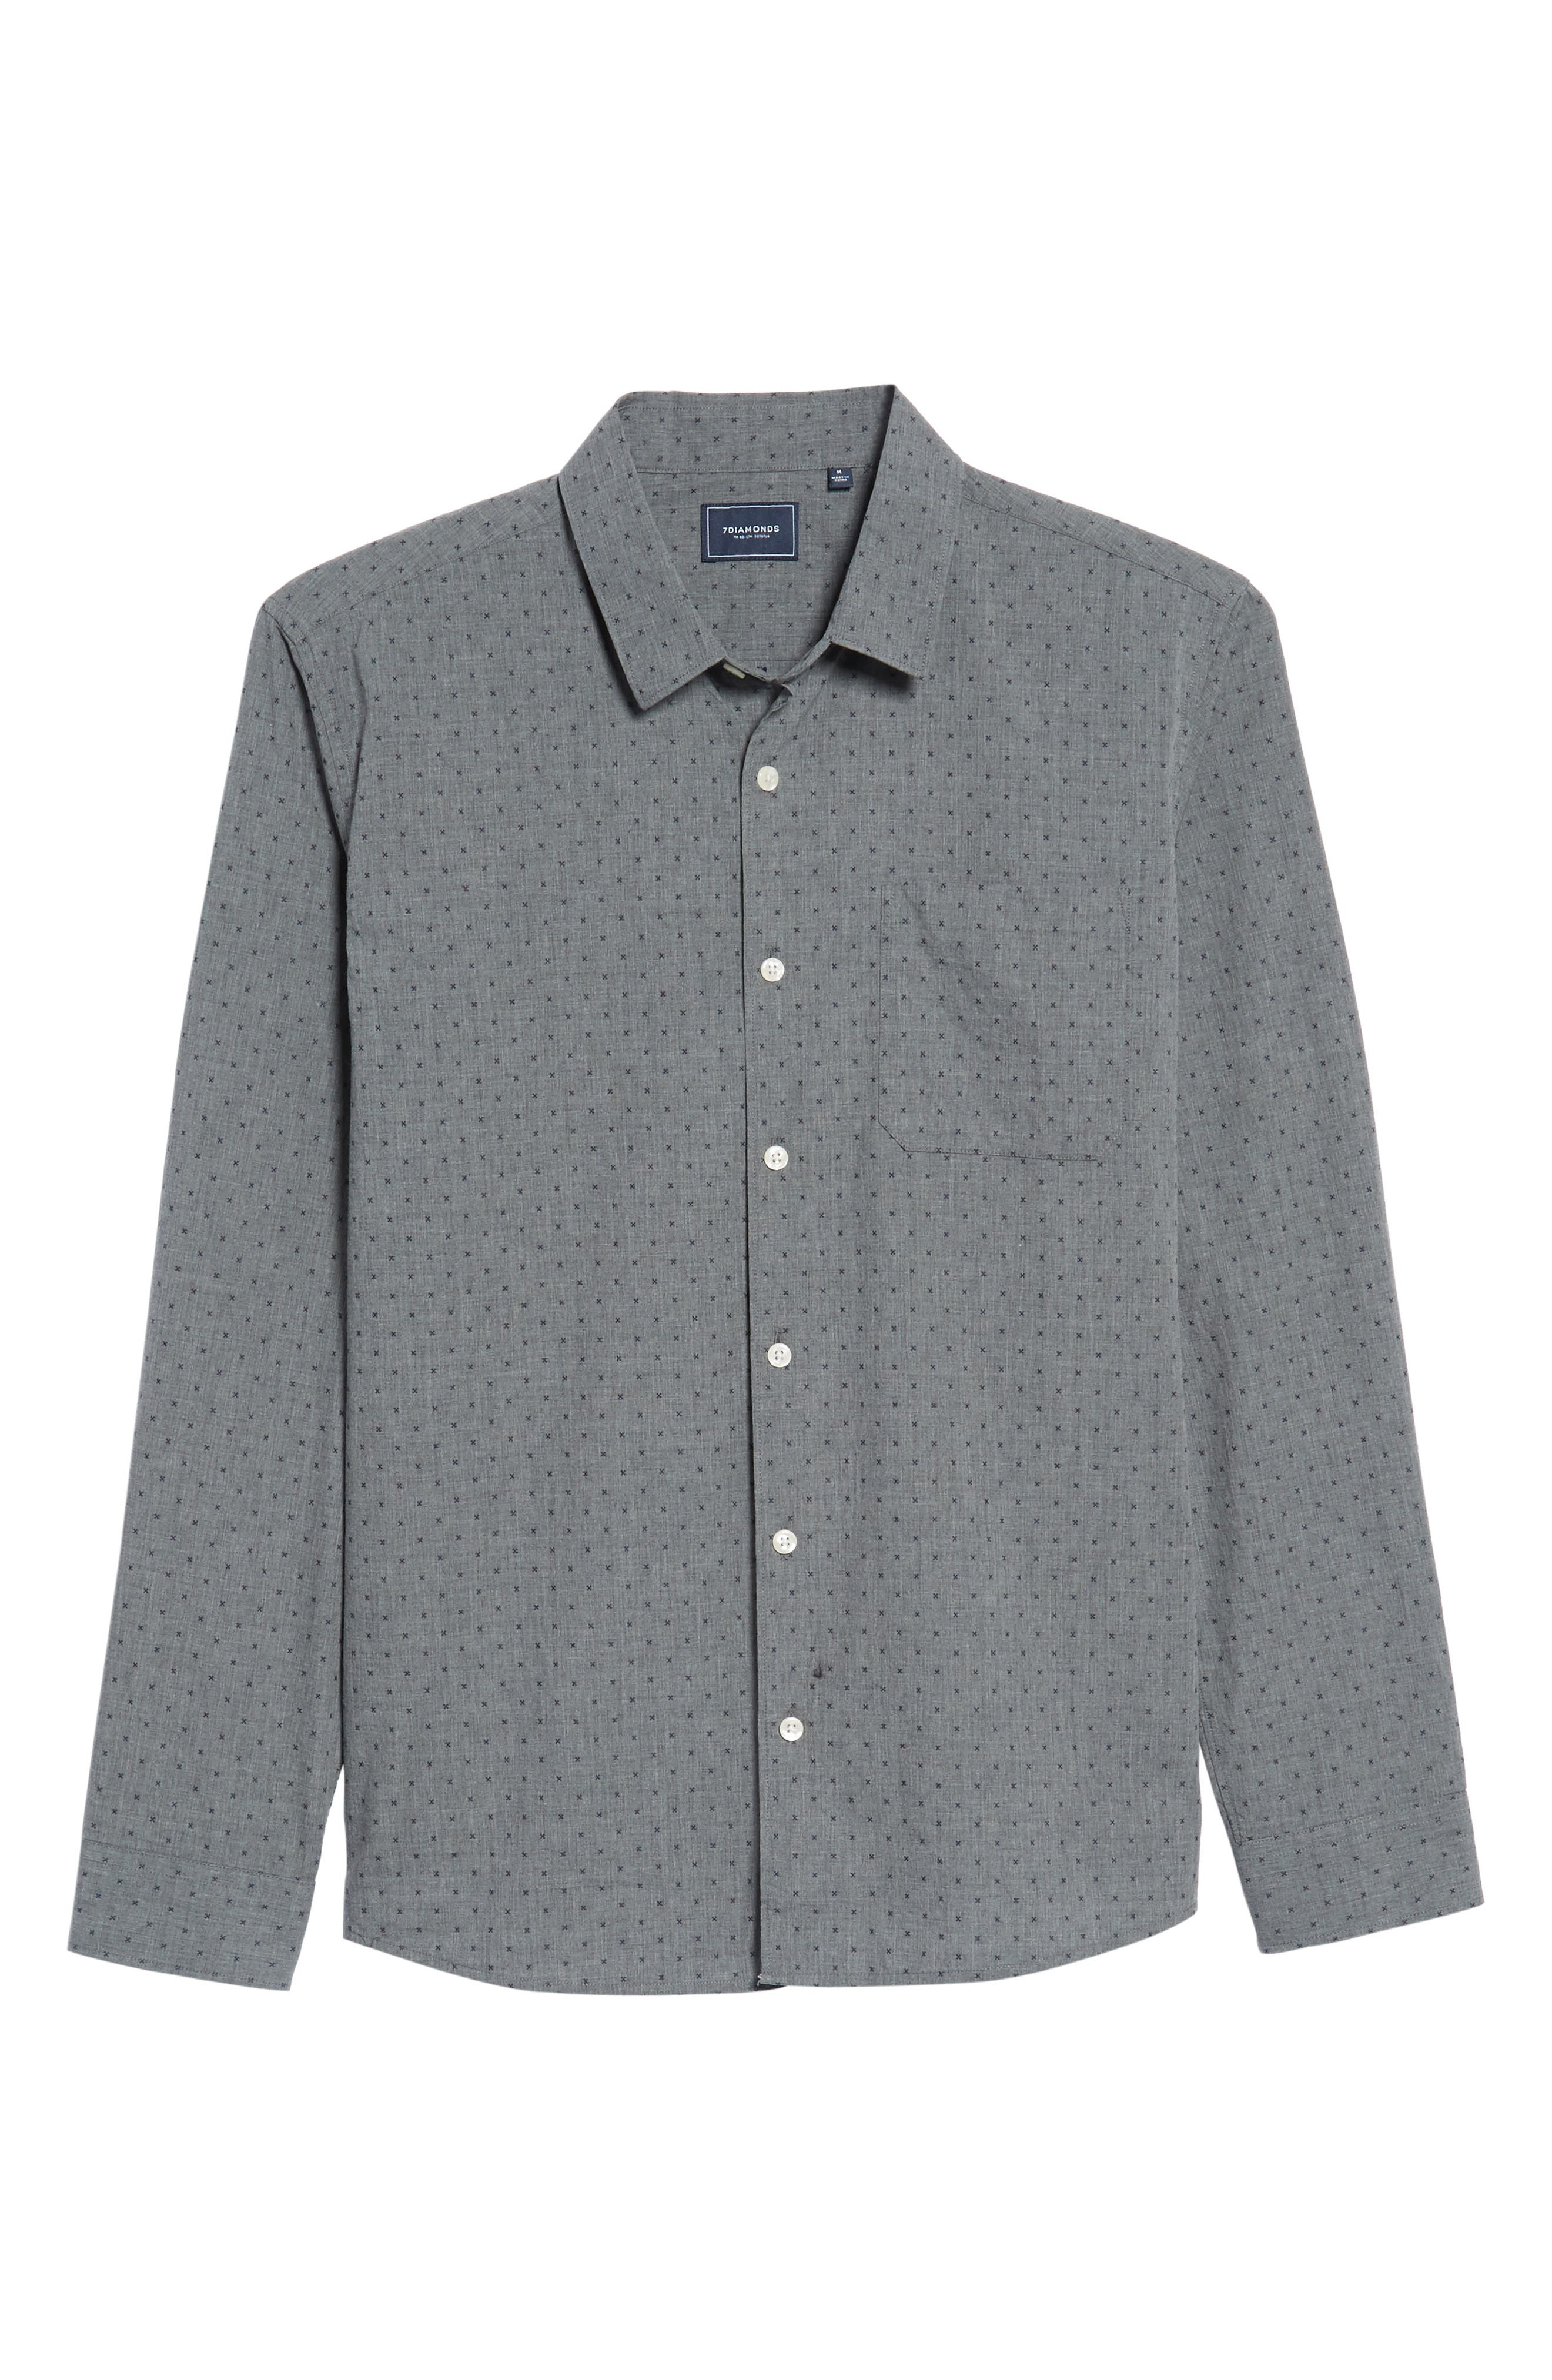 Steel Sky Woven Shirt,                             Alternate thumbnail 6, color,                             410